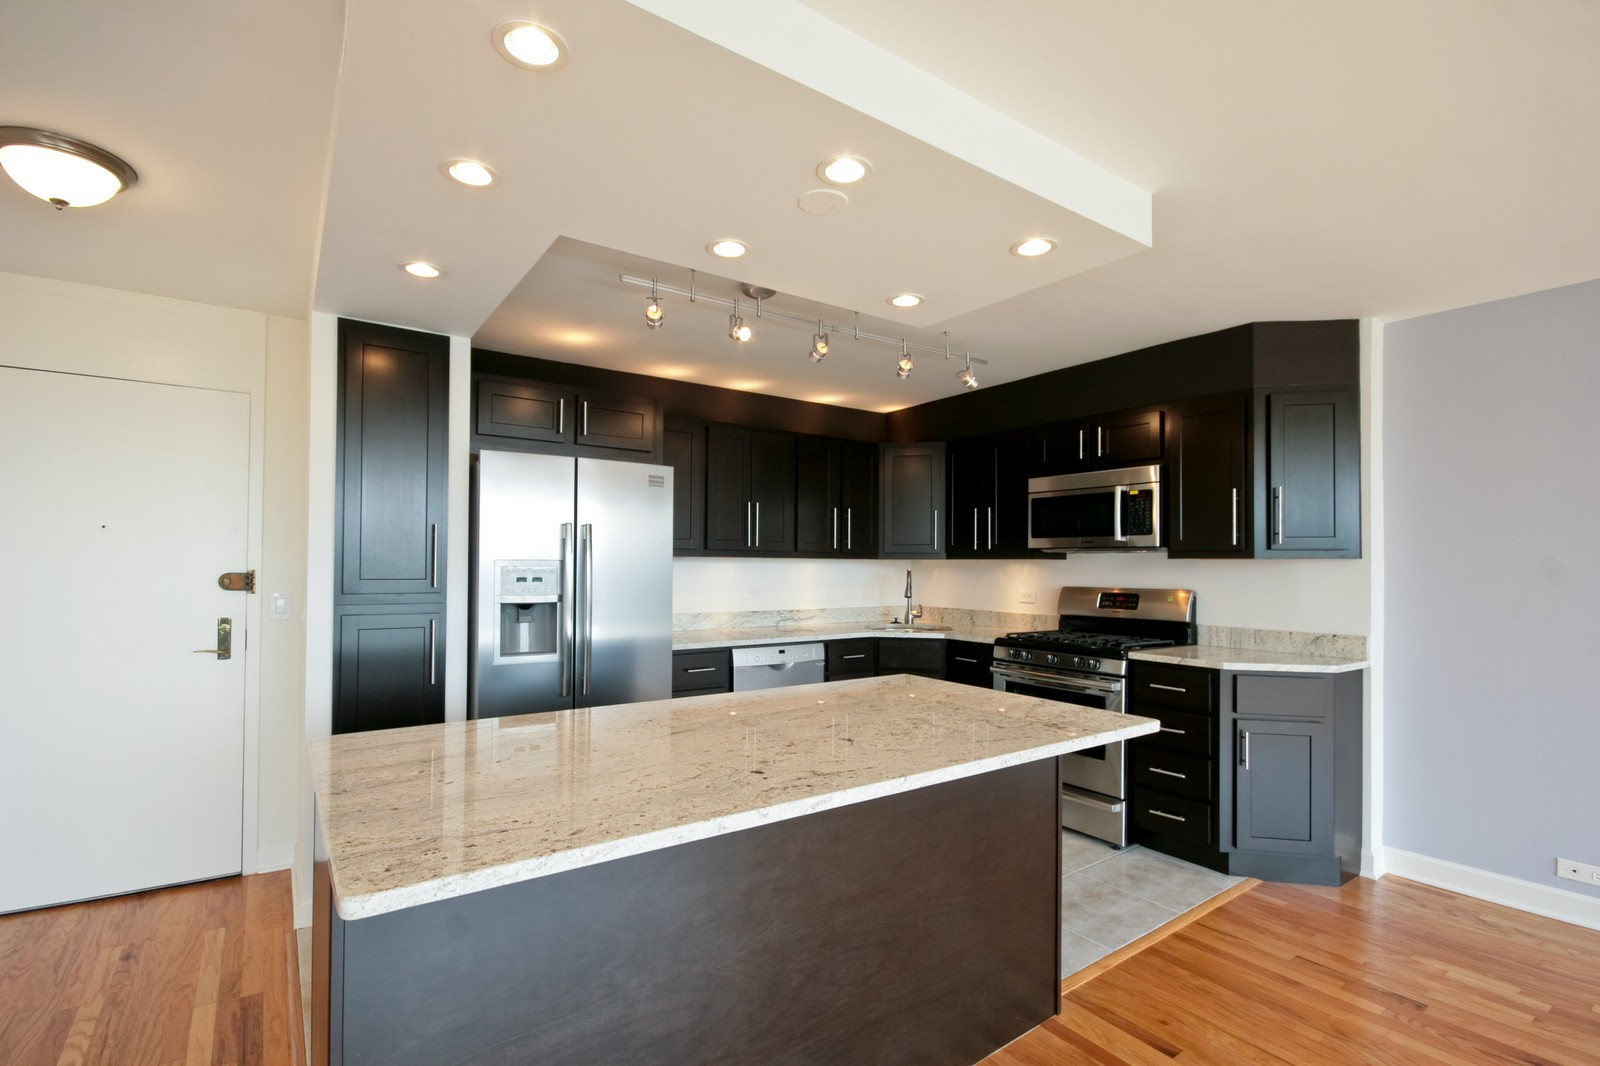 Real Estate Photography - 2800 N Lake Shore, Unit 806, Chicago, IL, 60657 - Kitchen